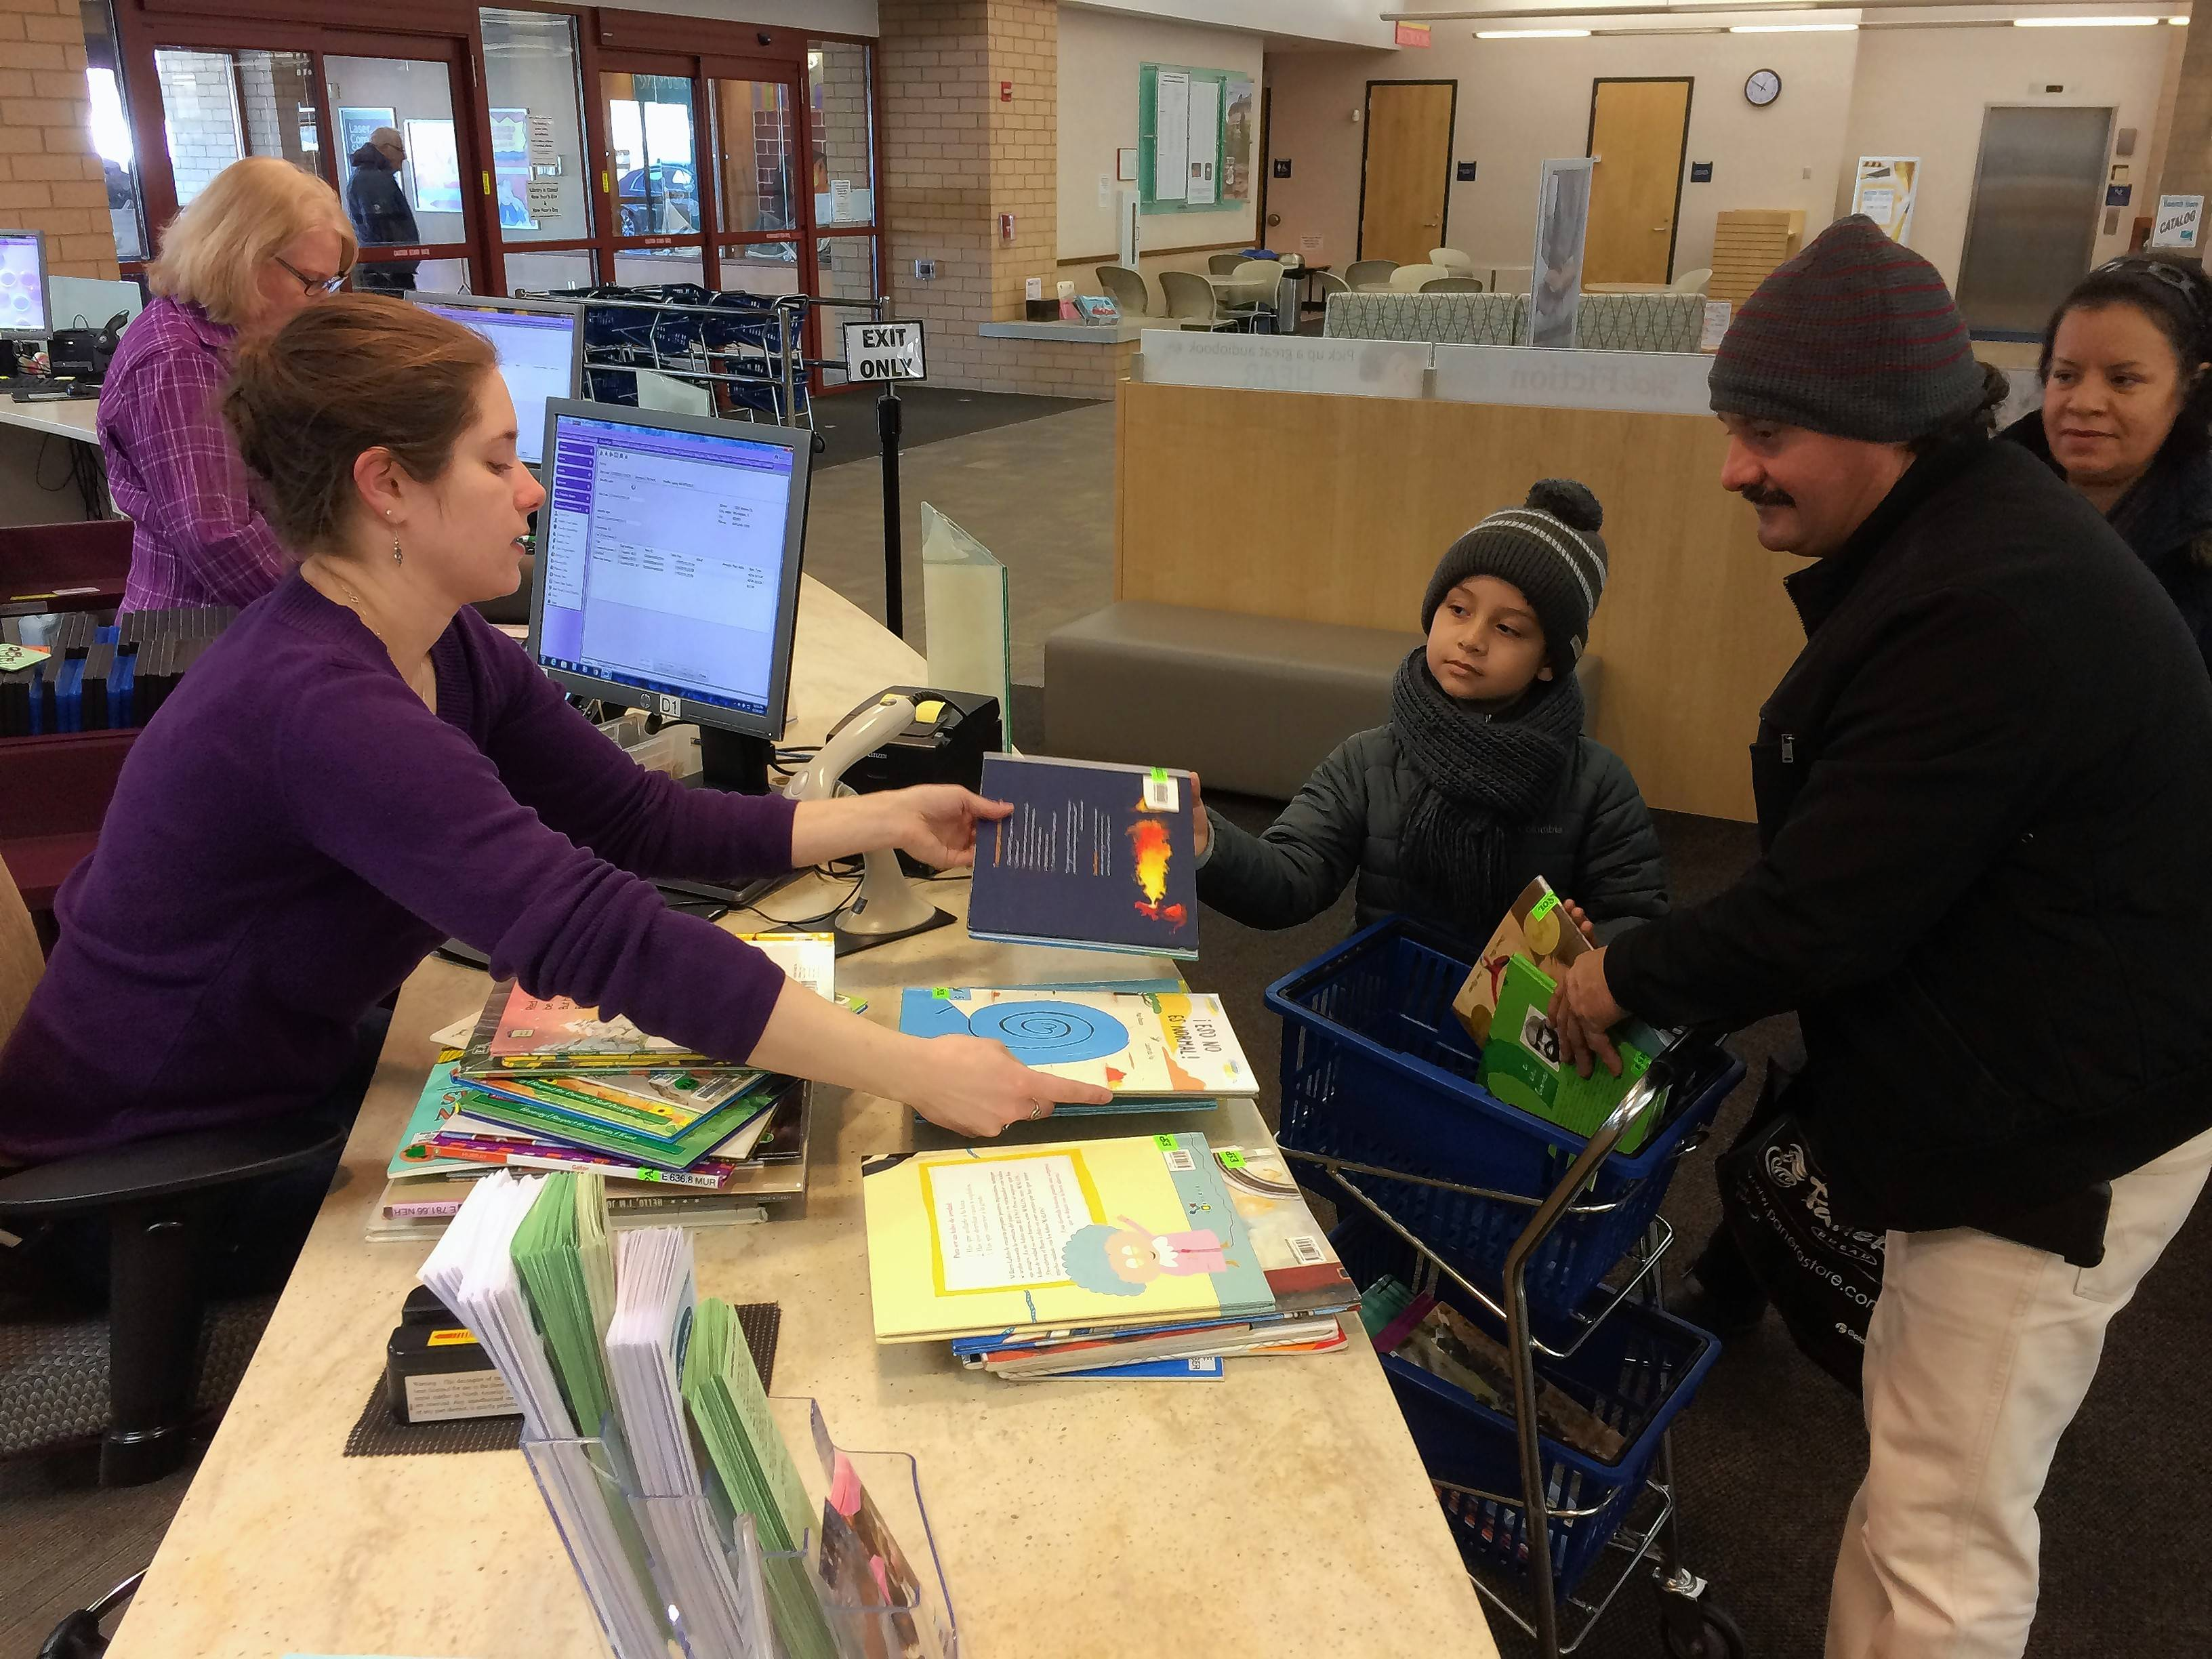 No more overdue fines at Mundelein's Fremont Public Library